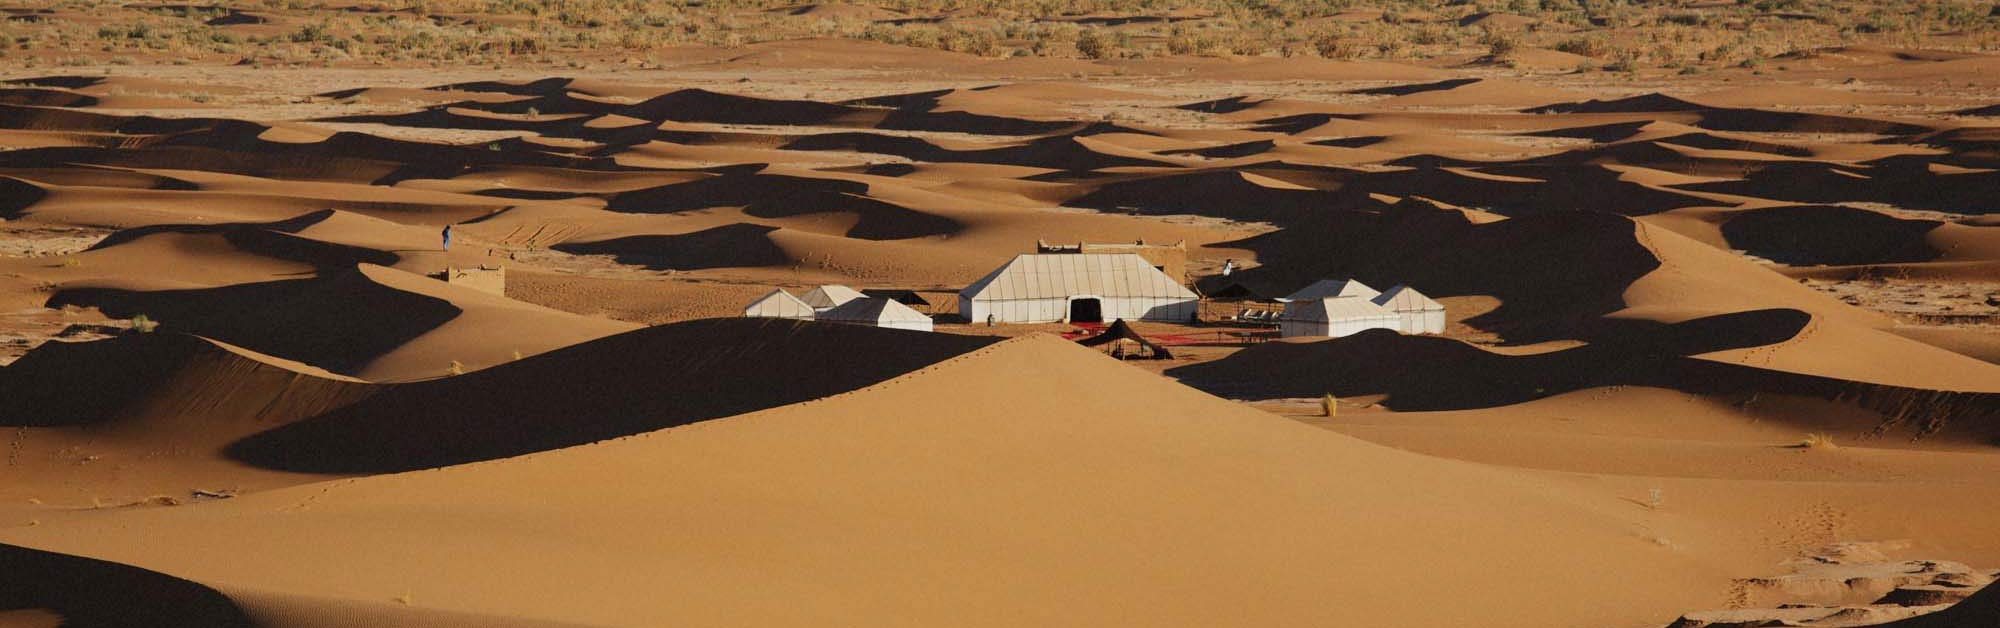 Authentic Sahara Desert Camp Accommodation for Yoga Retreat